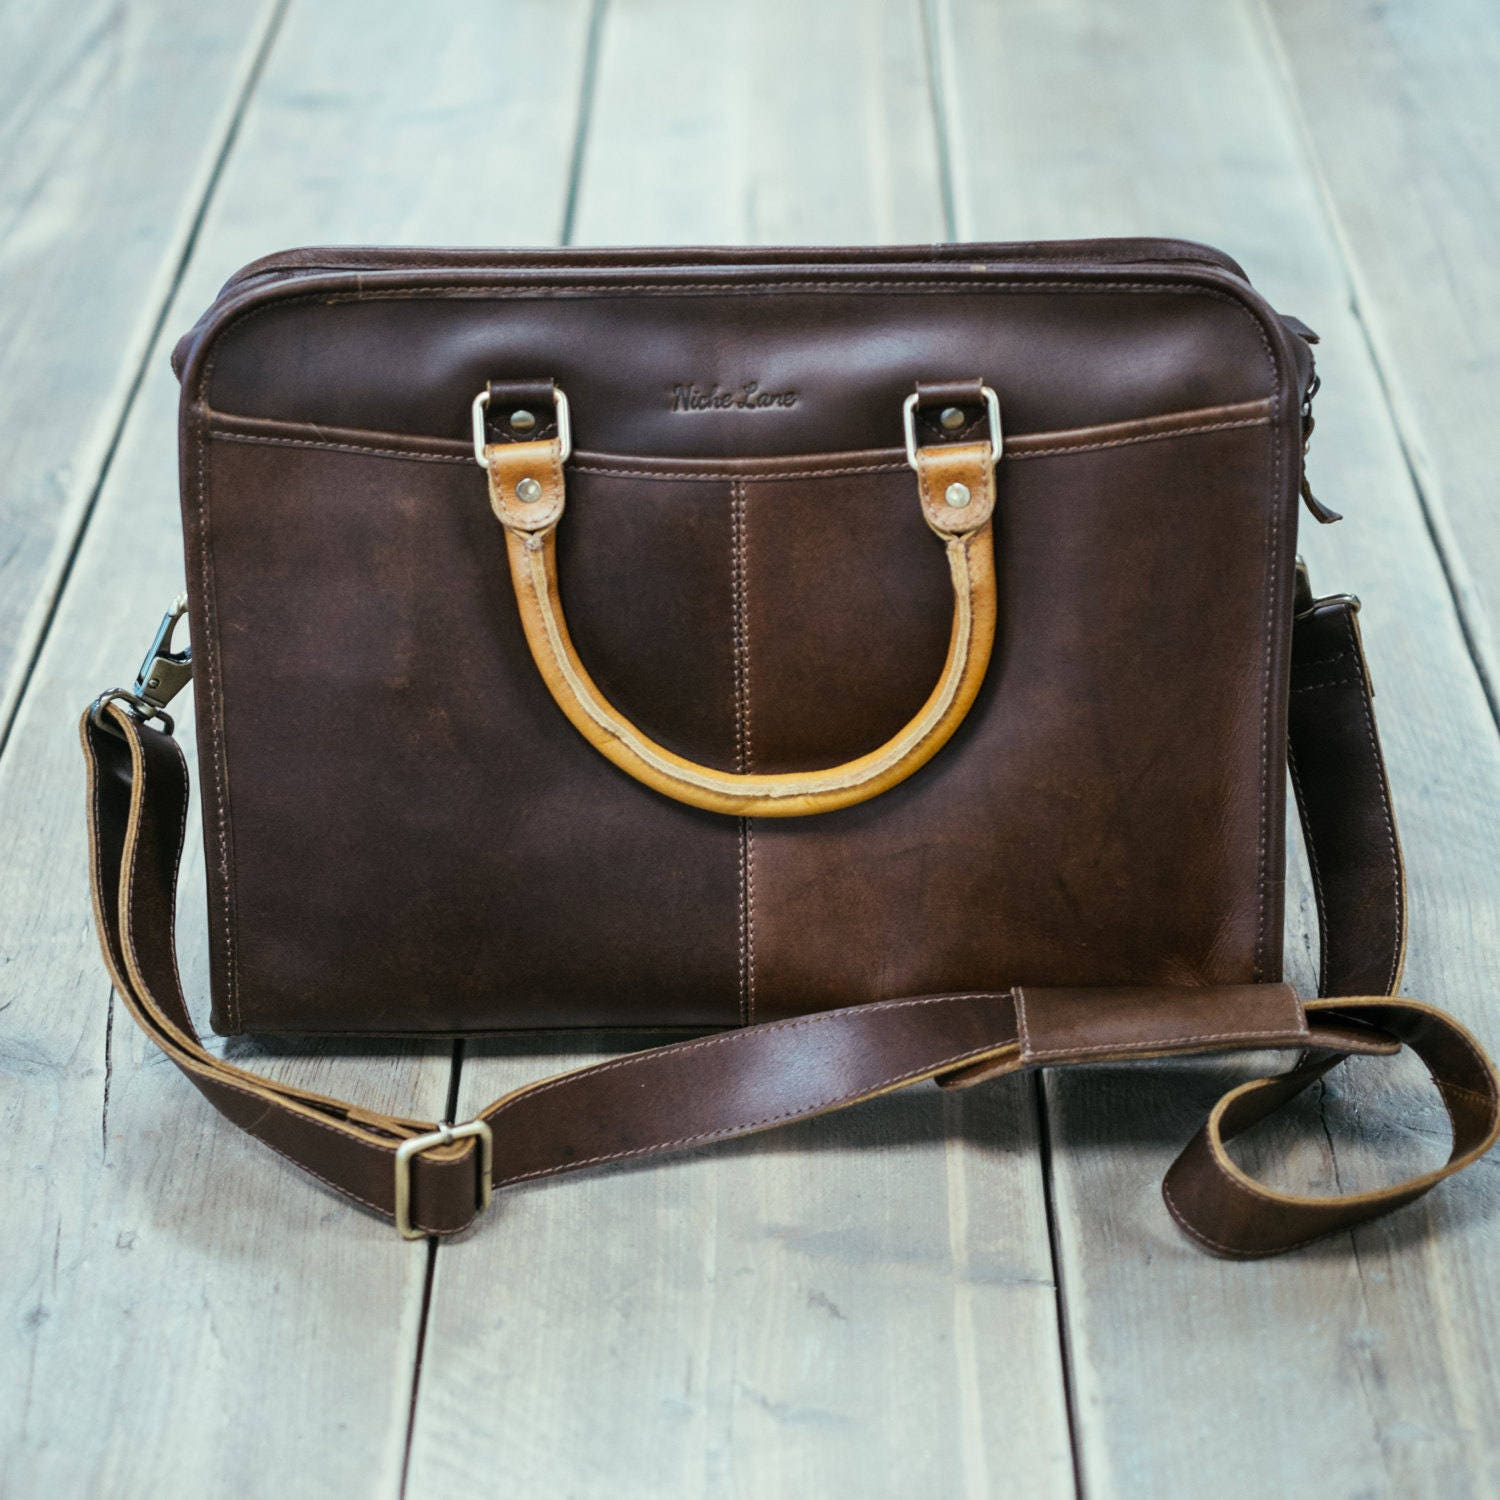 Leather briefcase  14 inch laptop satchel Messenger Bag for men and women  Niche Lane Loxley Coffee